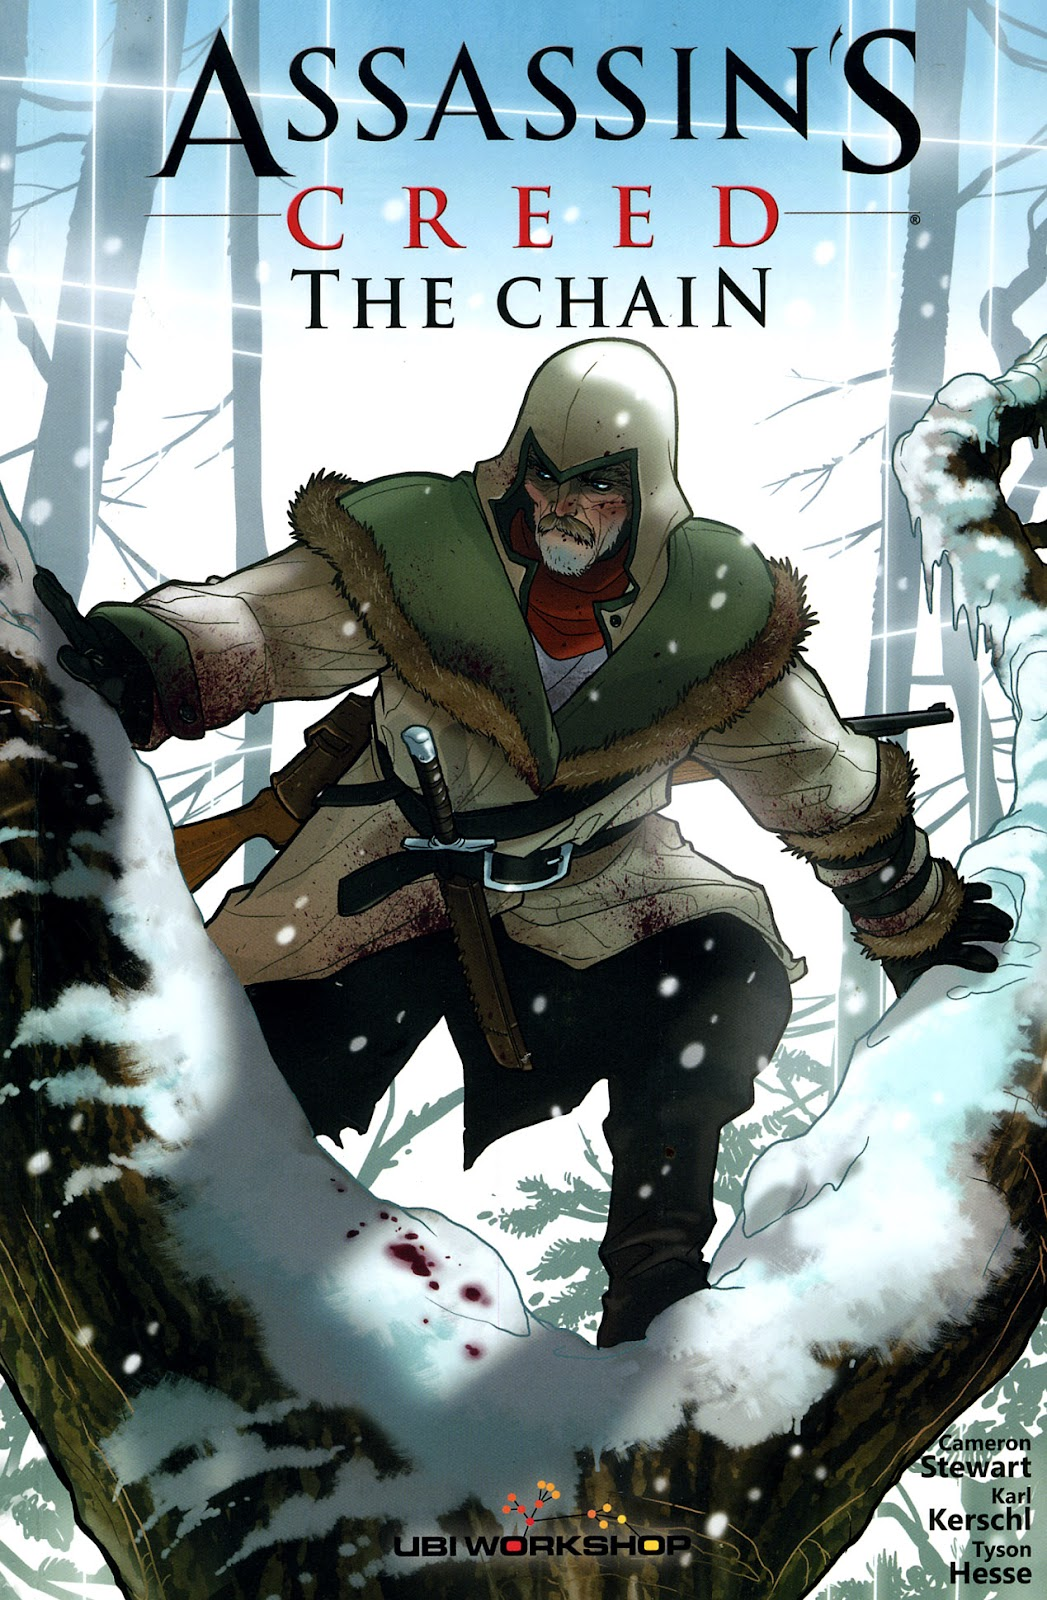 Assassin's Creed - The Chain (2013) issue 1 - Page 1